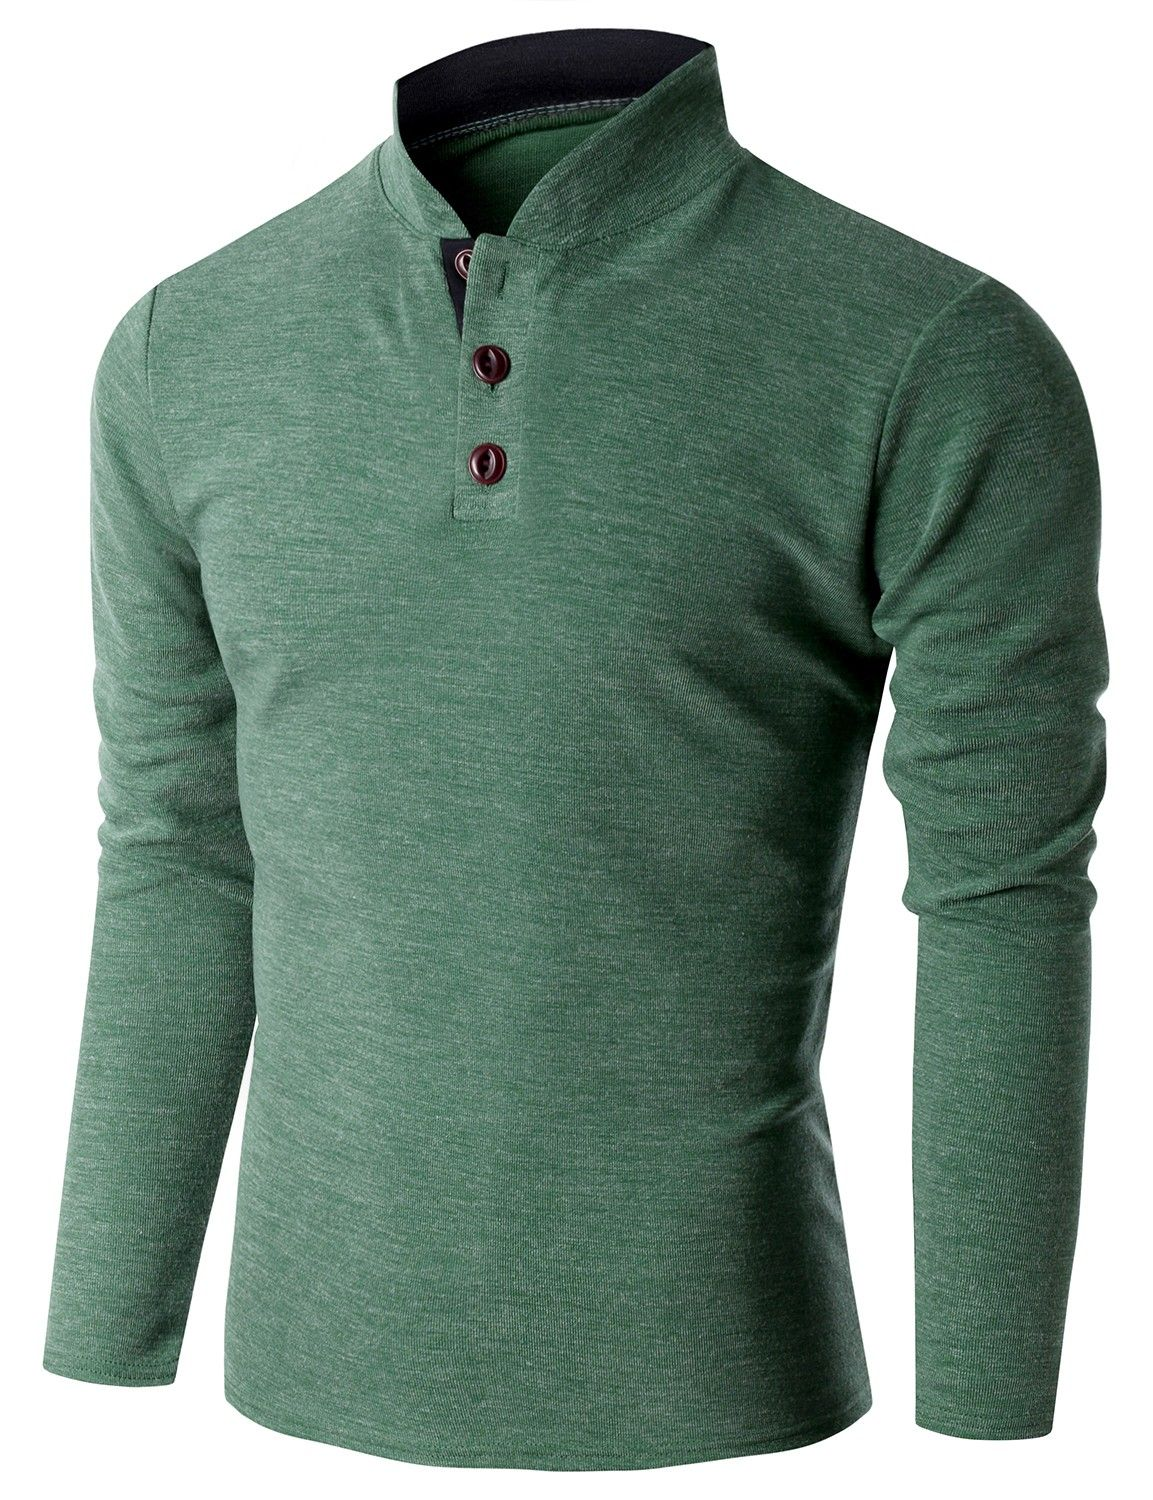 9ba333eba0fe Doublju Men's Long Sleeve China Collar Henley Neck T-shirt (KMTTL0155)  #doublju